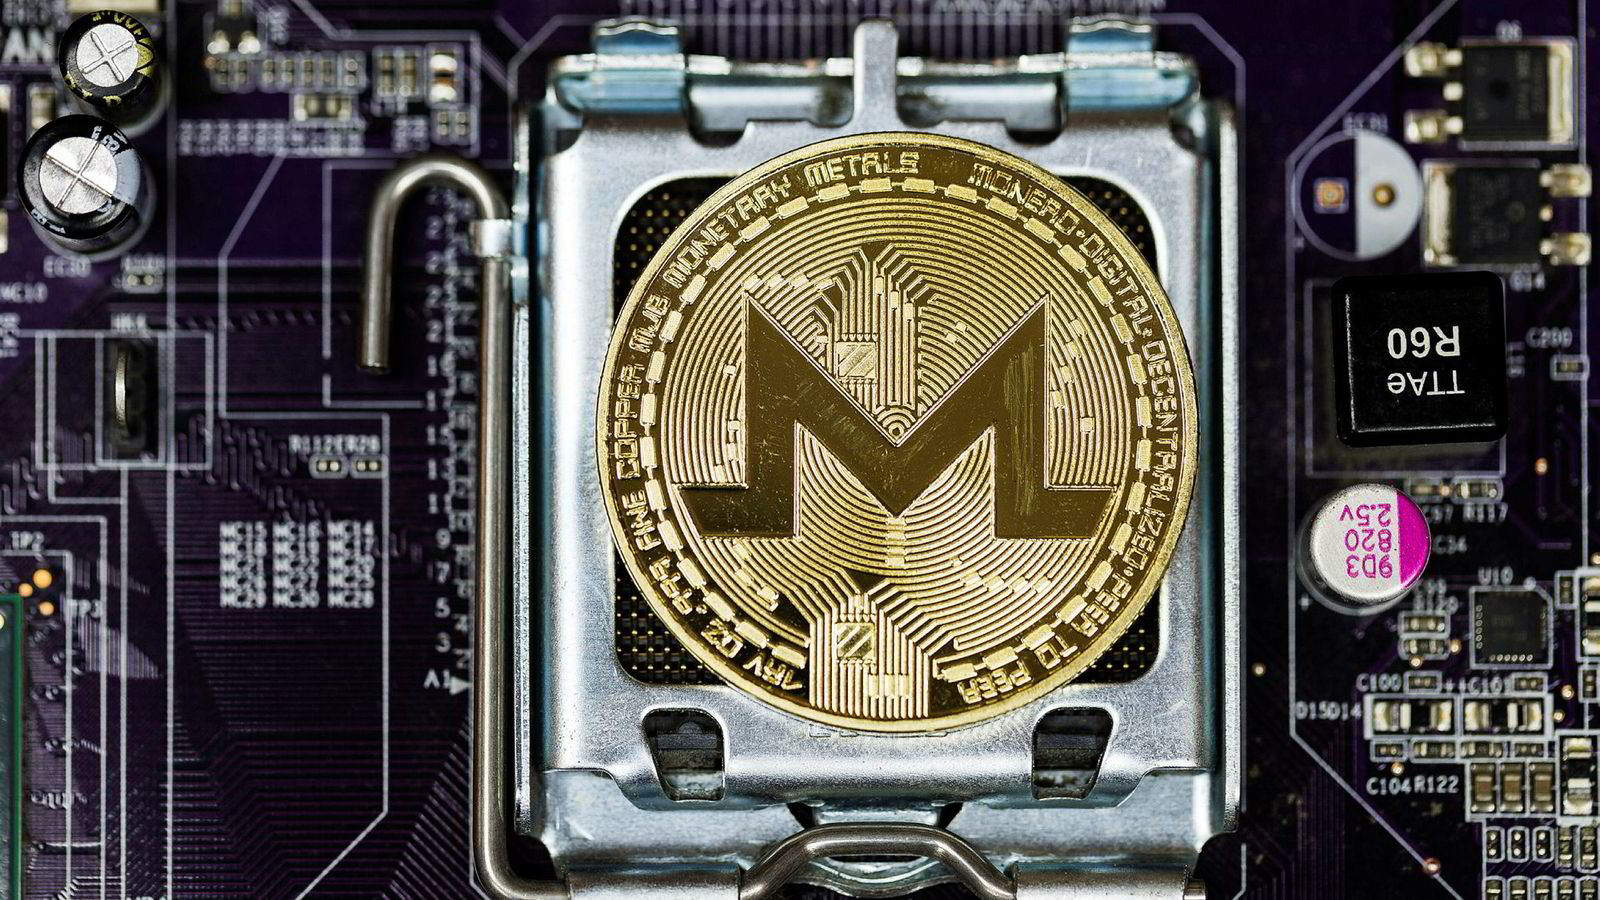 Kryptovalutaen monero er designet for full anonymitet.